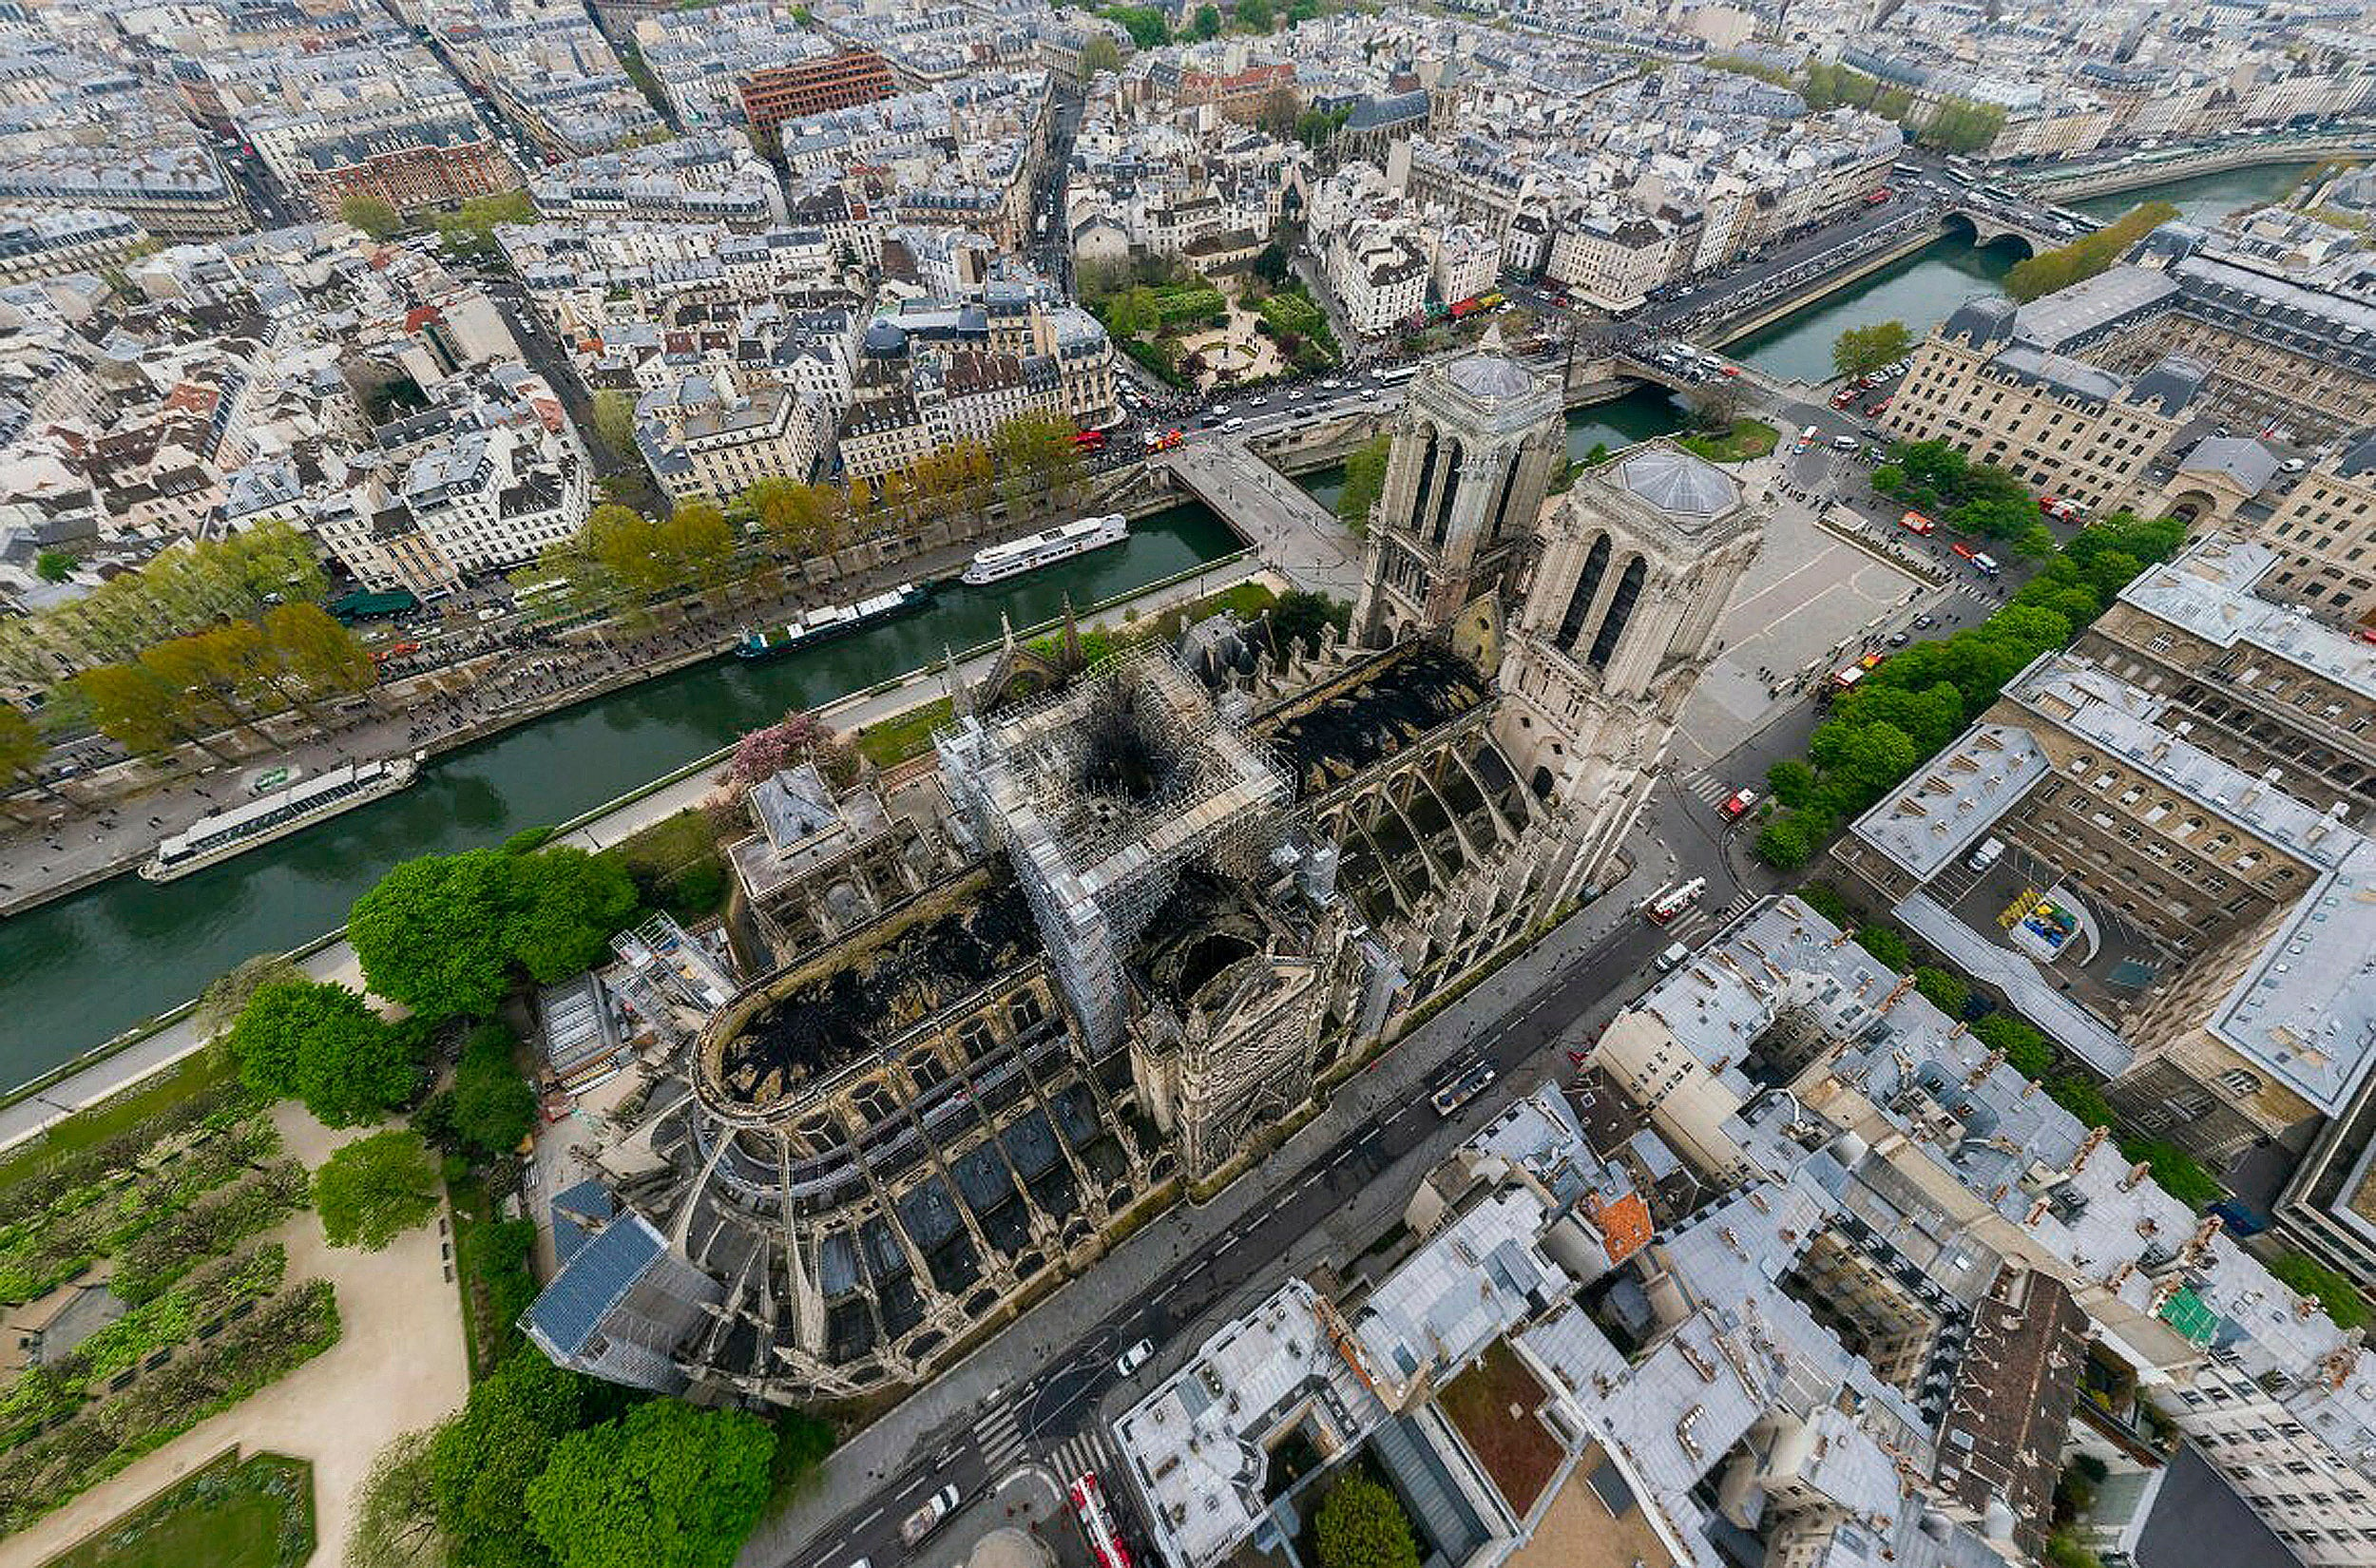 How to restore Notre-Dame? Architect John Beyer discusses possibilities